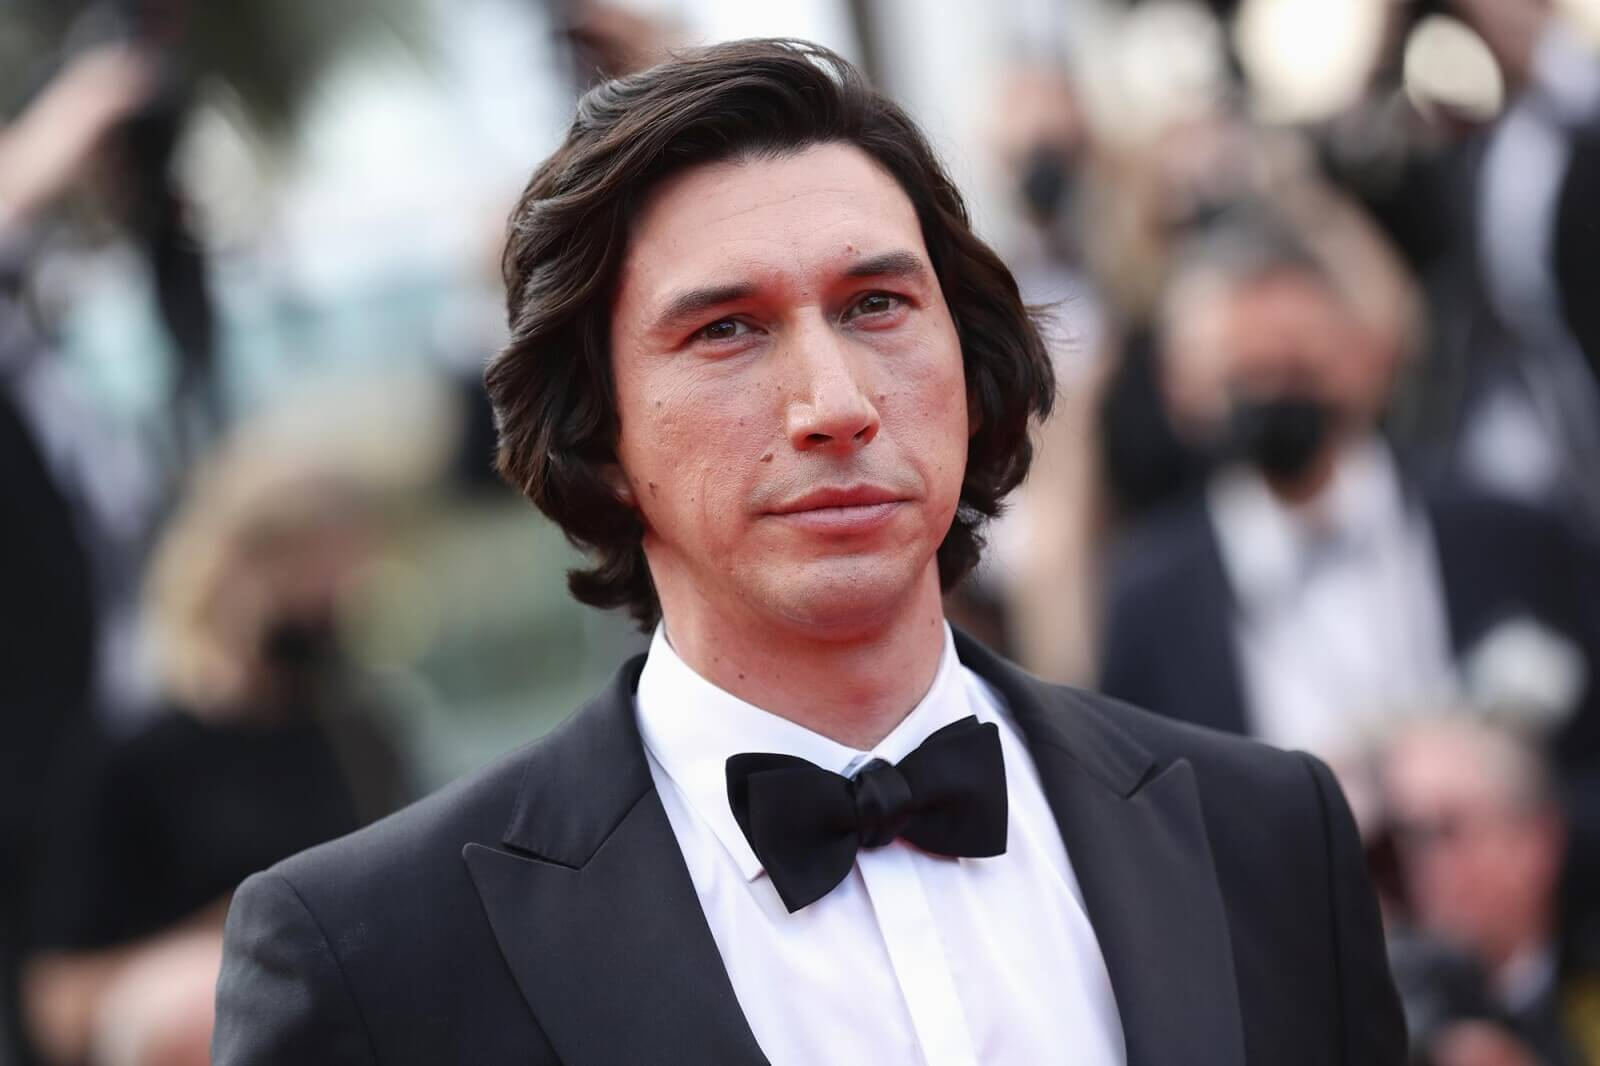 CANNES, FRANCE - JULY 06: Adam Driver attends the